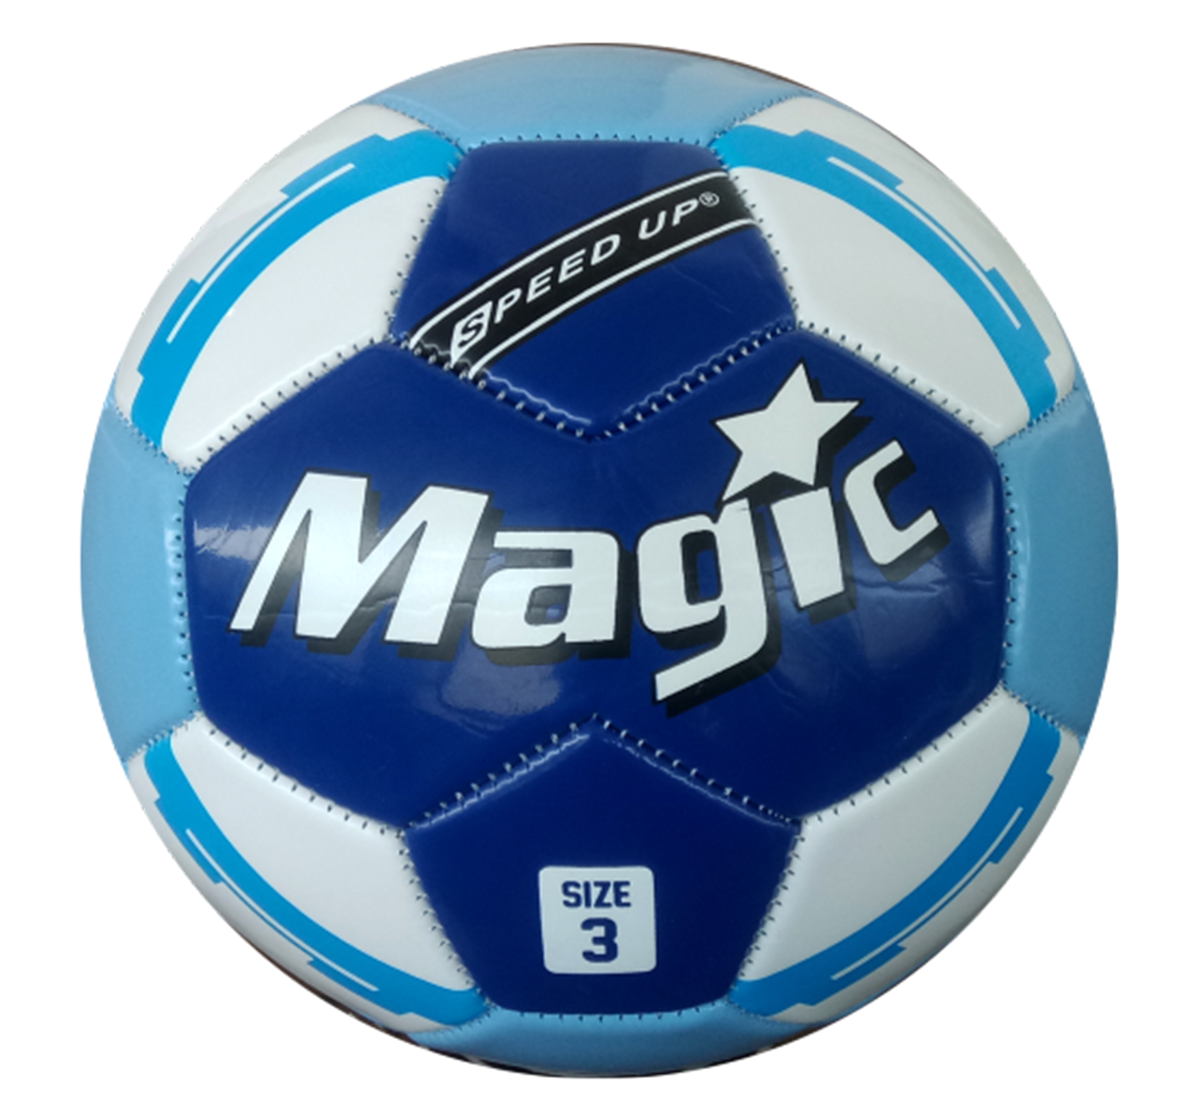 Speed Up | Speed Up Football Size 3 Magic for Kids age 10Y+